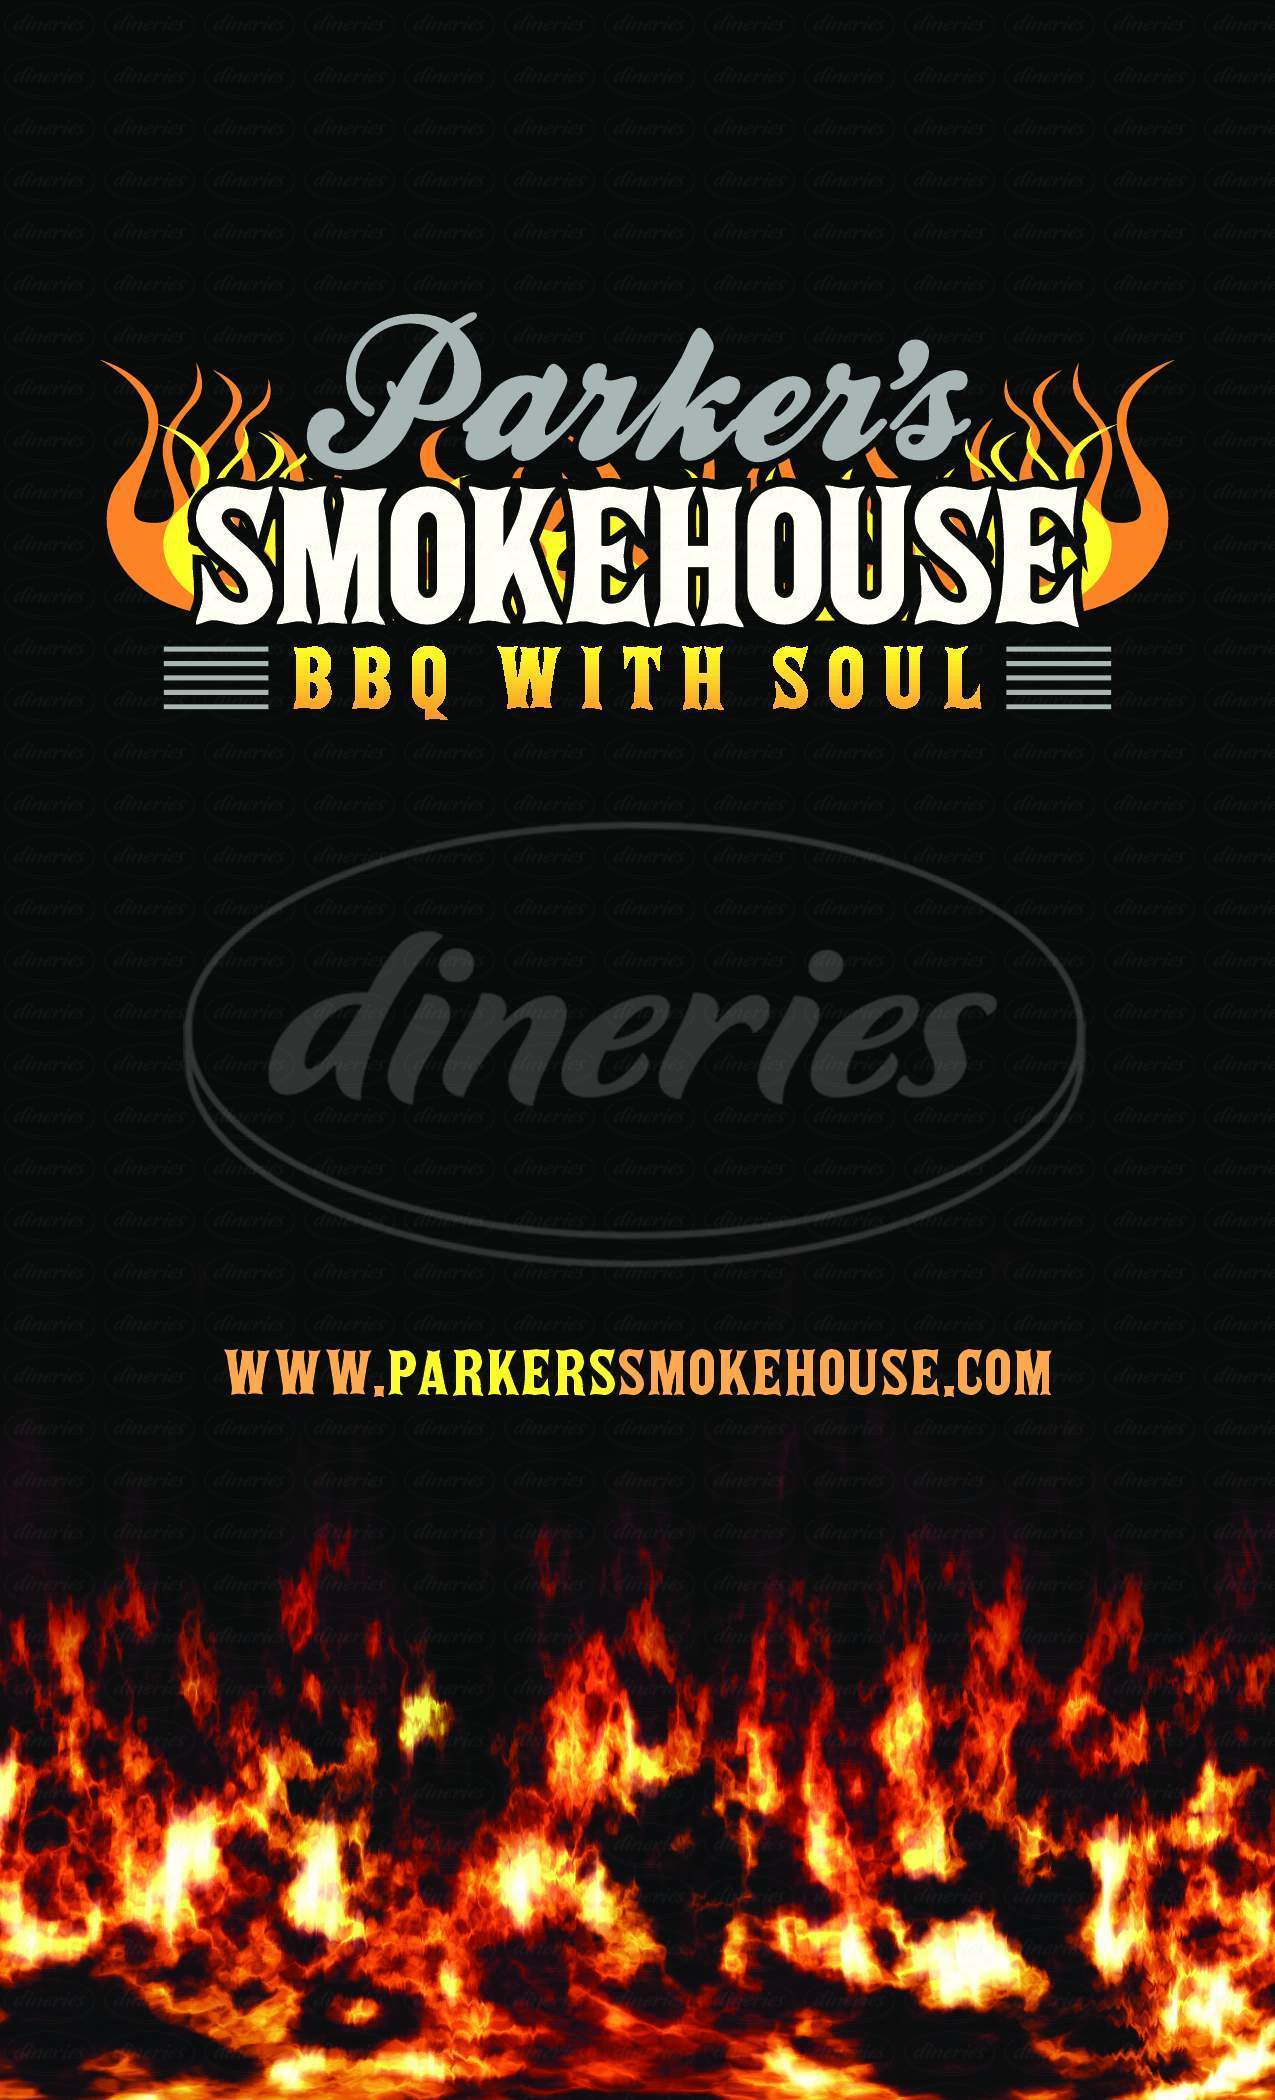 menu for Parker's Smokehouse